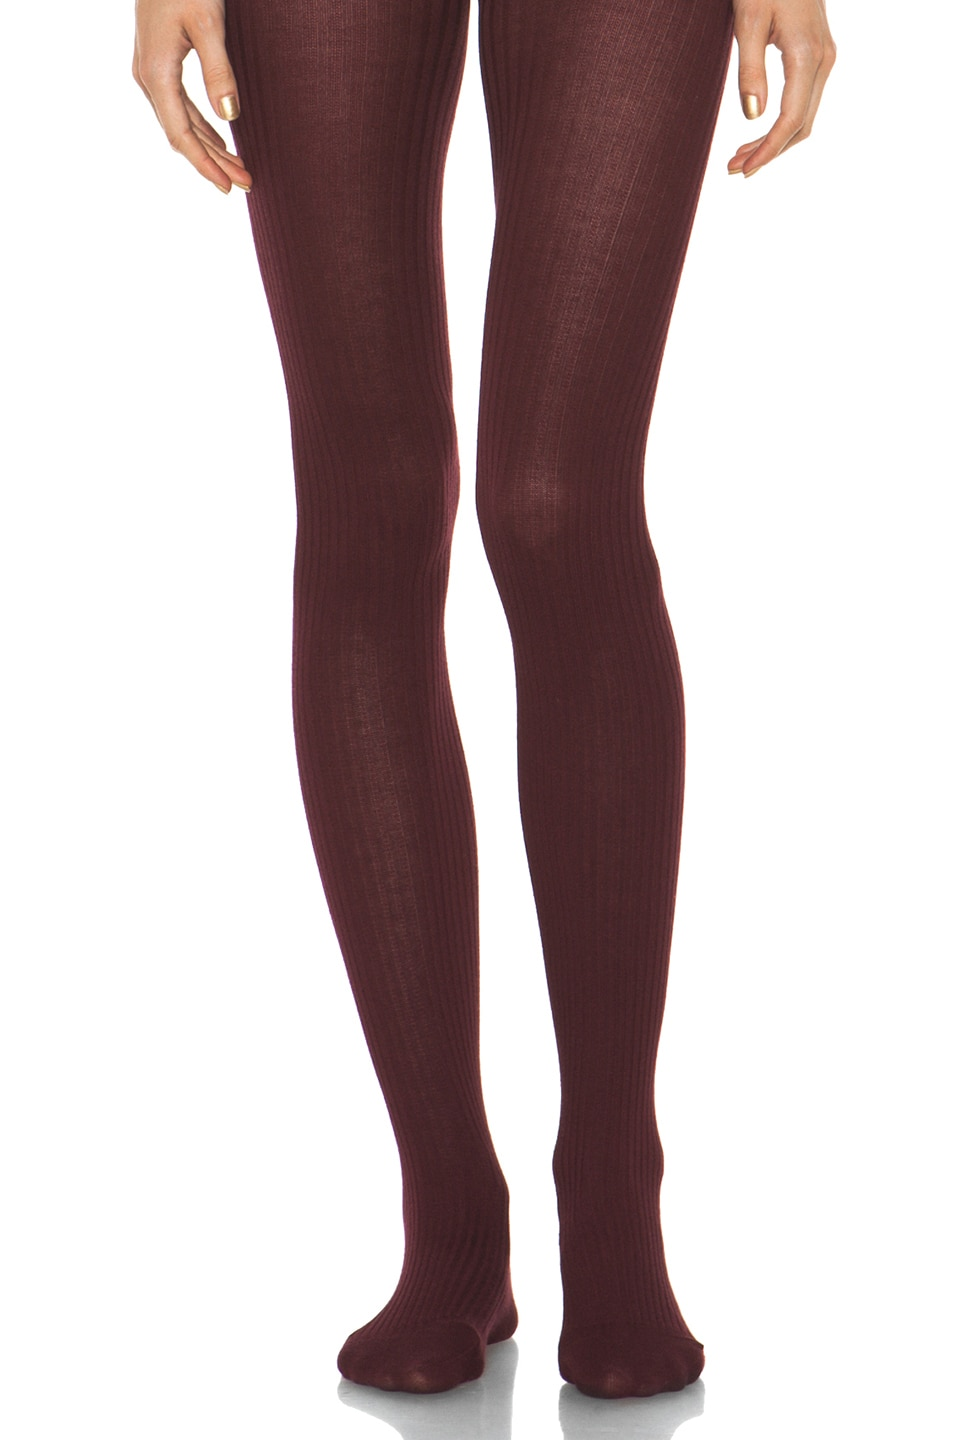 Image 1 of A.P.C. Collant Tights in Bordeaux